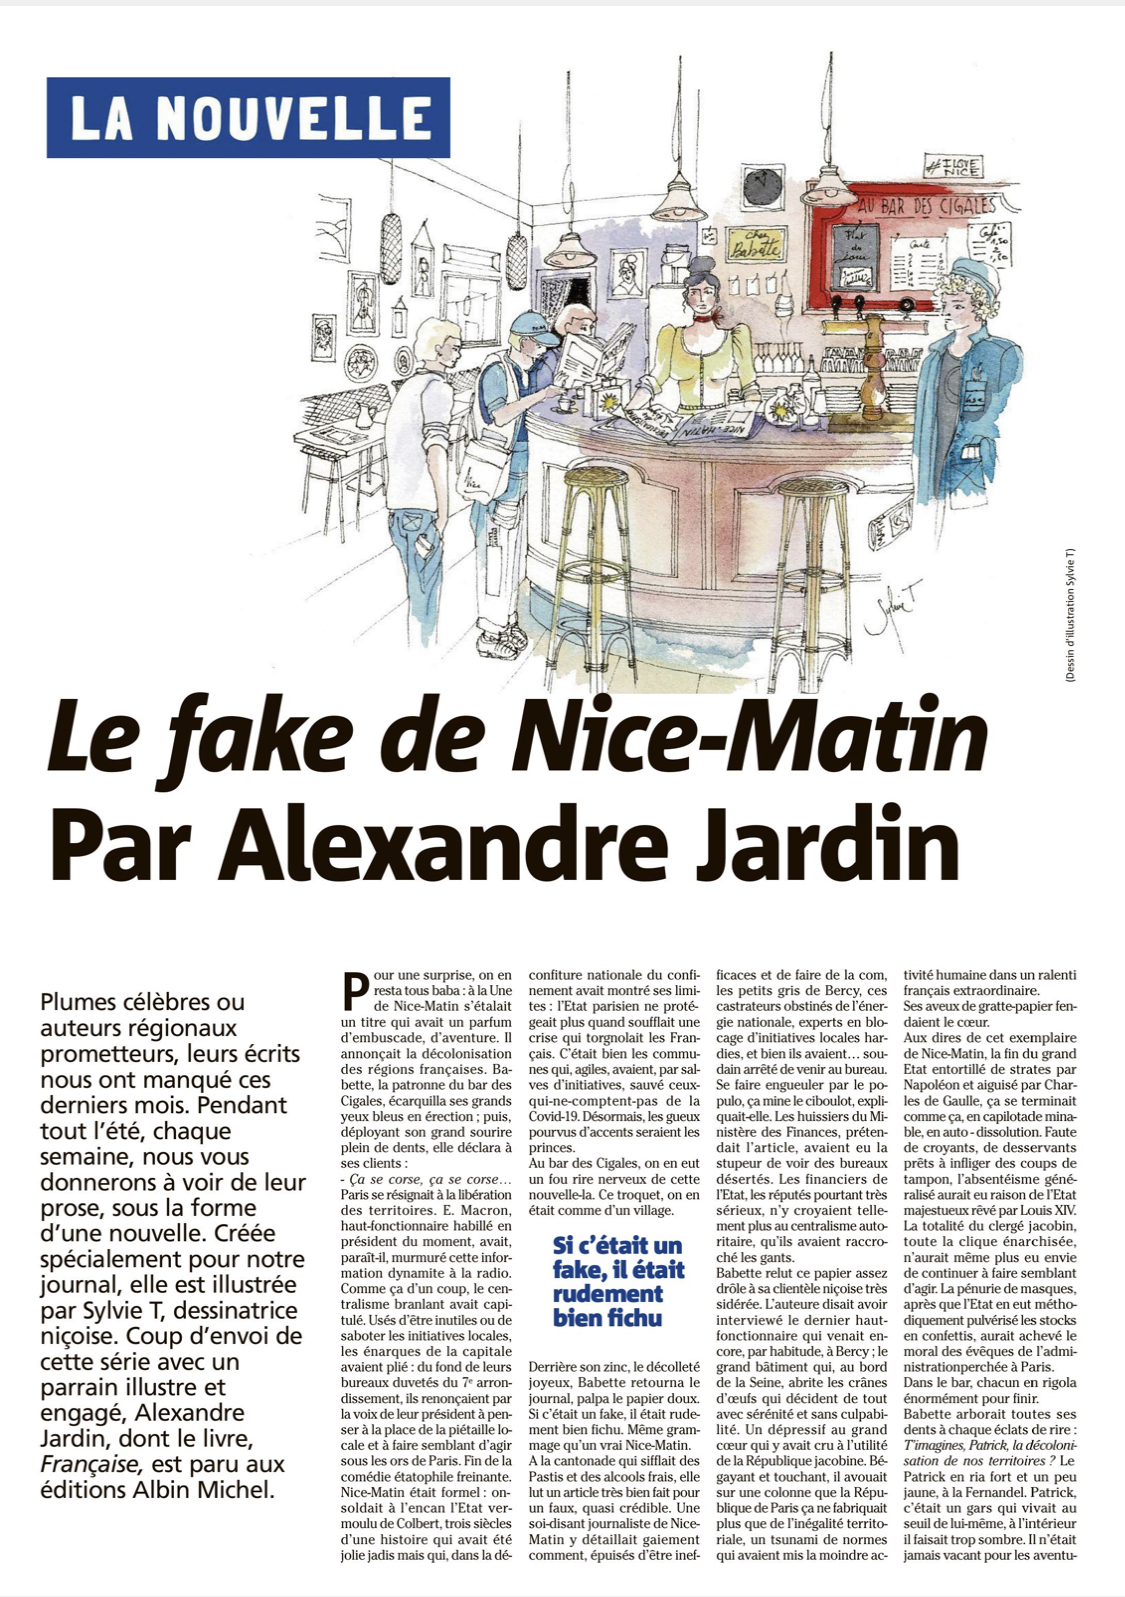 Les nouvelles Nice Matin - Illustrations by Sylvie T